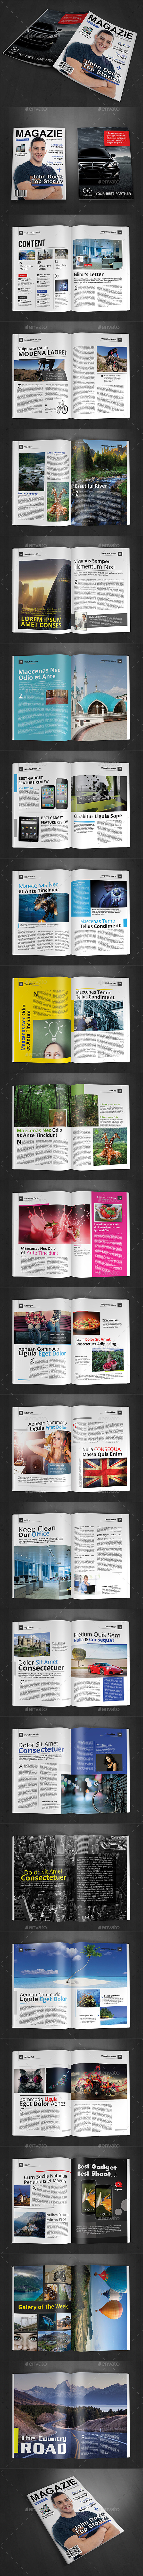 GraphicRiver A4 Magazine Template Vol 6 8889899